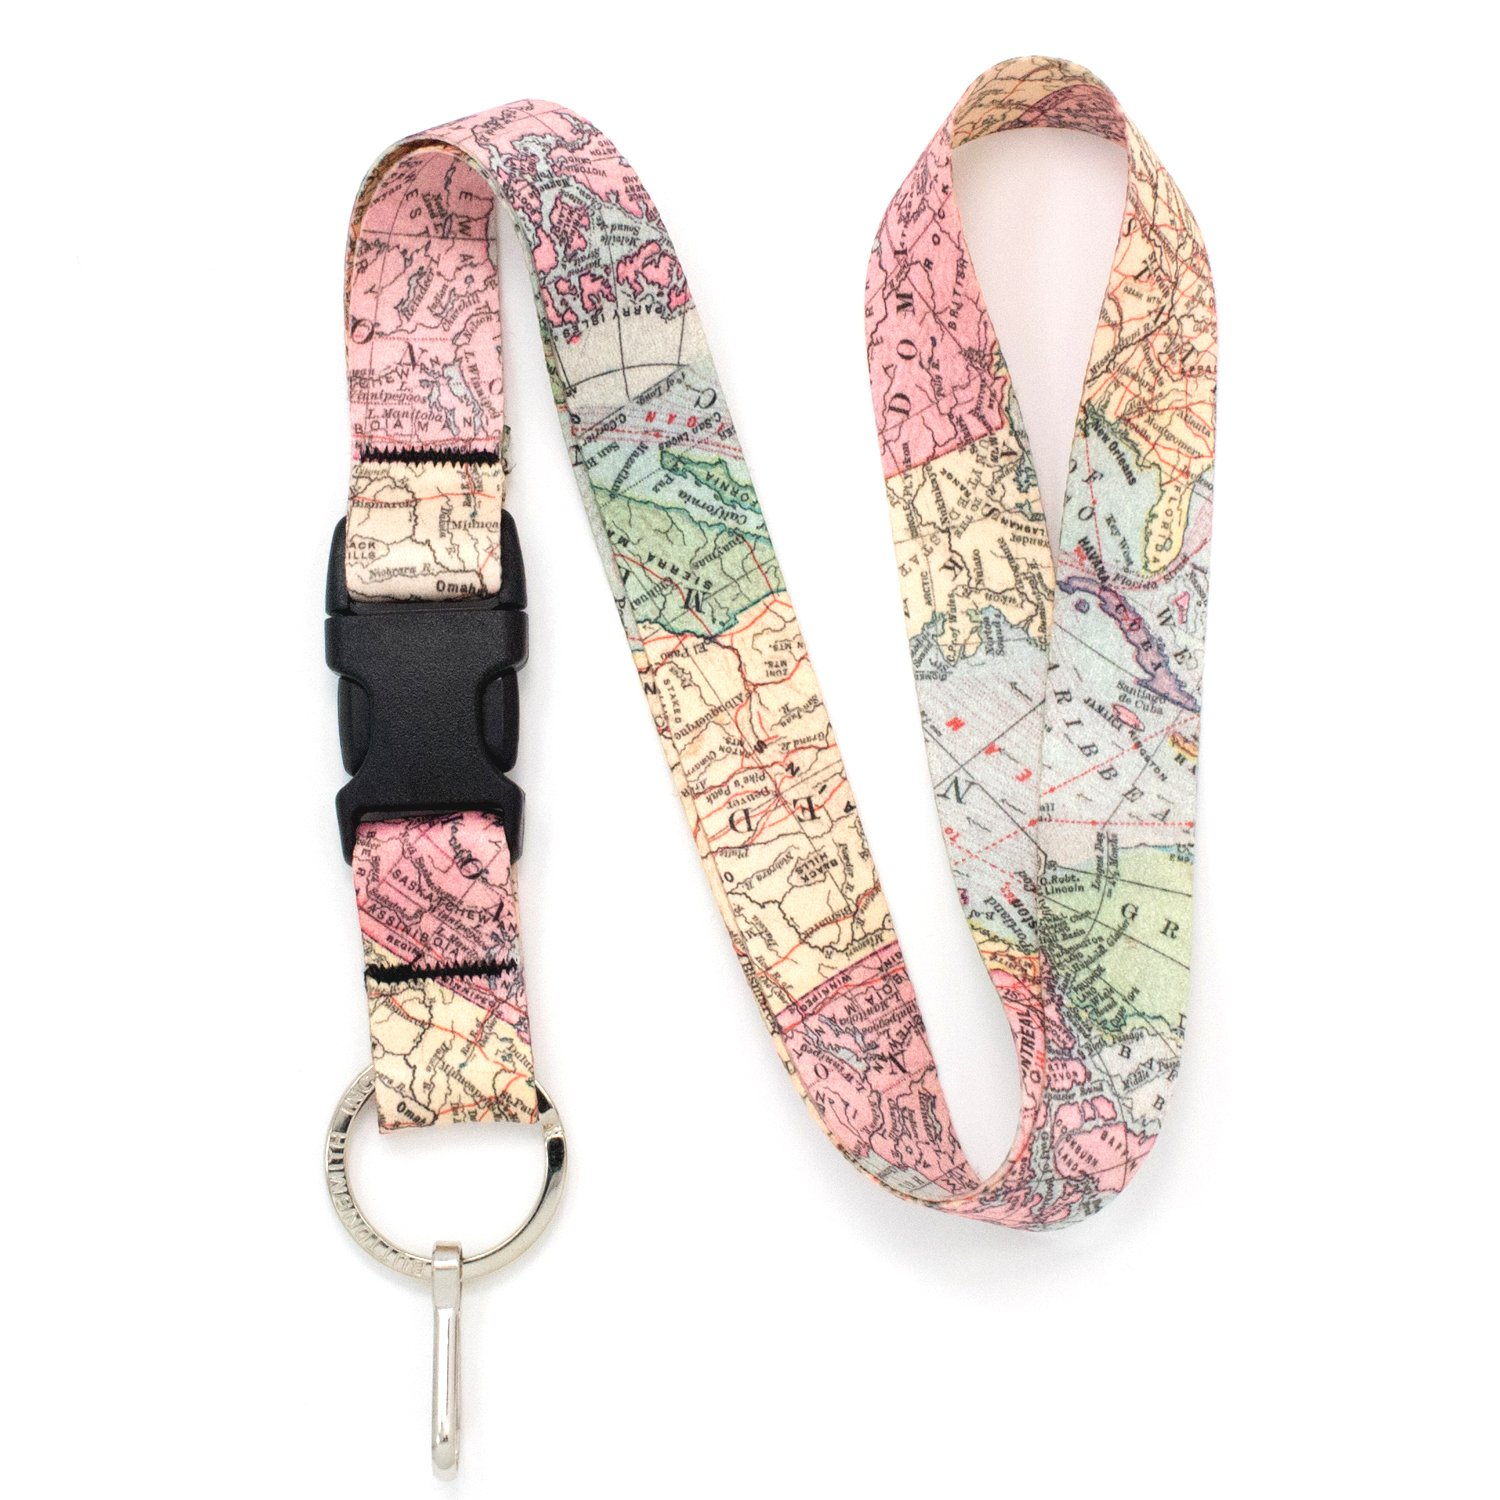 Buttonsmith Vintage Map Premium Lanyard with Buckle and Flat Ring - Made in The USA